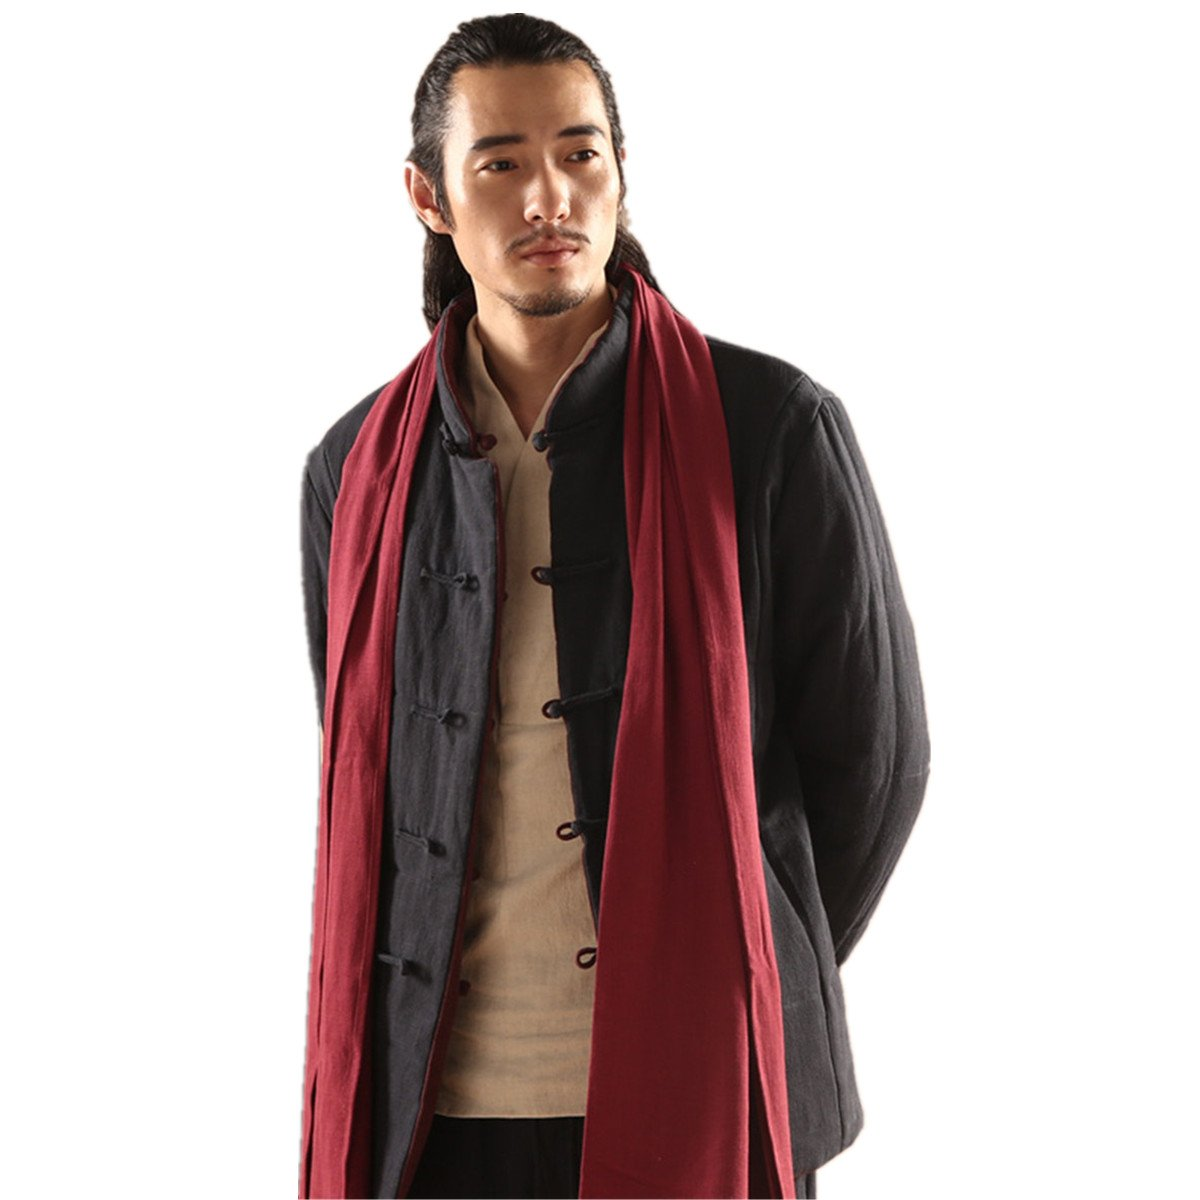 WEISAN Men Chinese Retro Martial Stand Collar Winter Reversible Cotton Wadded Jacket